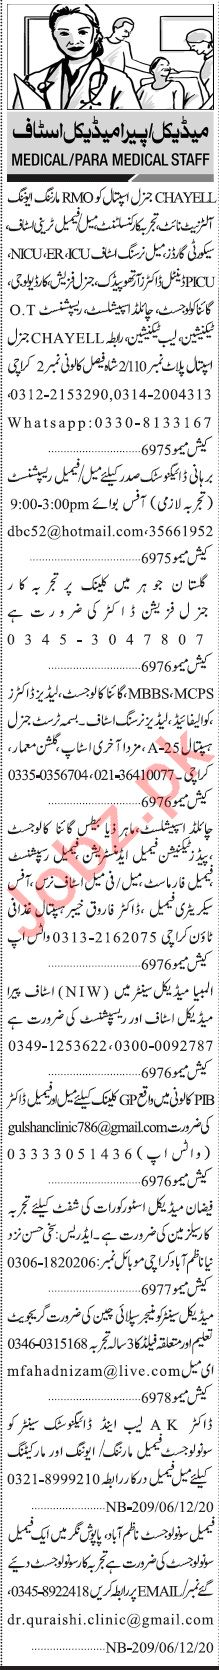 Jang Sunday Classified Ads 6 Dec 2020 for Medical Staff